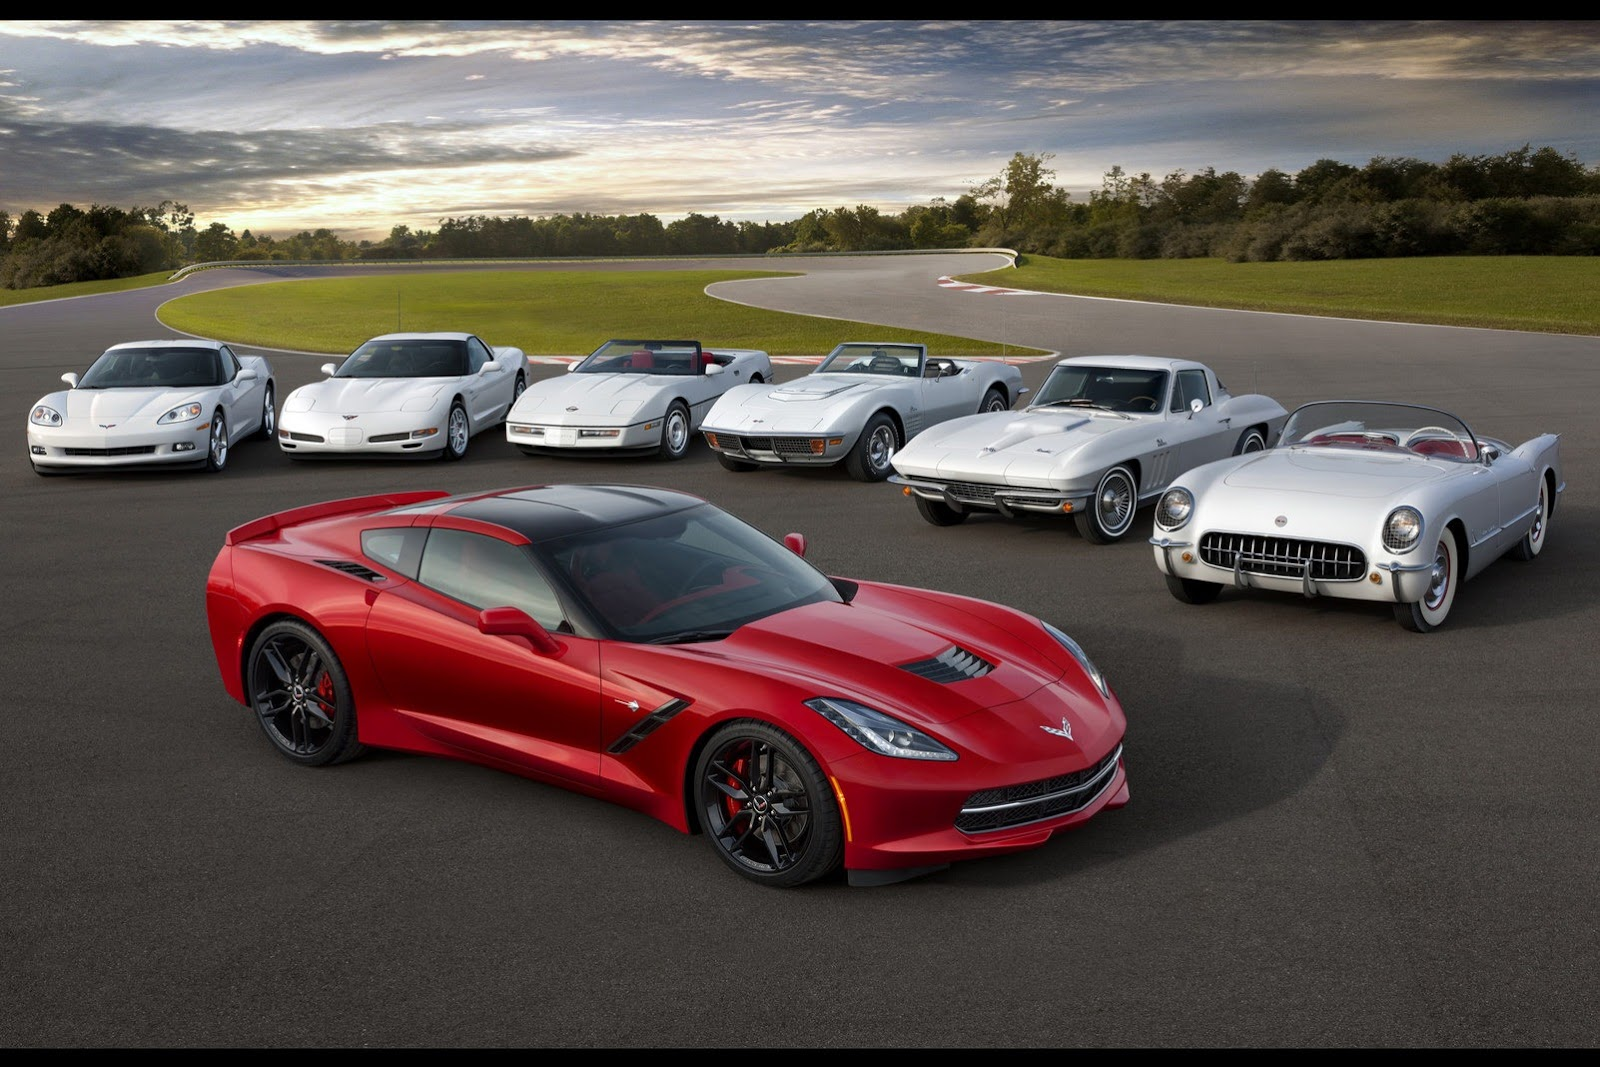 2014 Chevrolet Corvette C7 All7generations